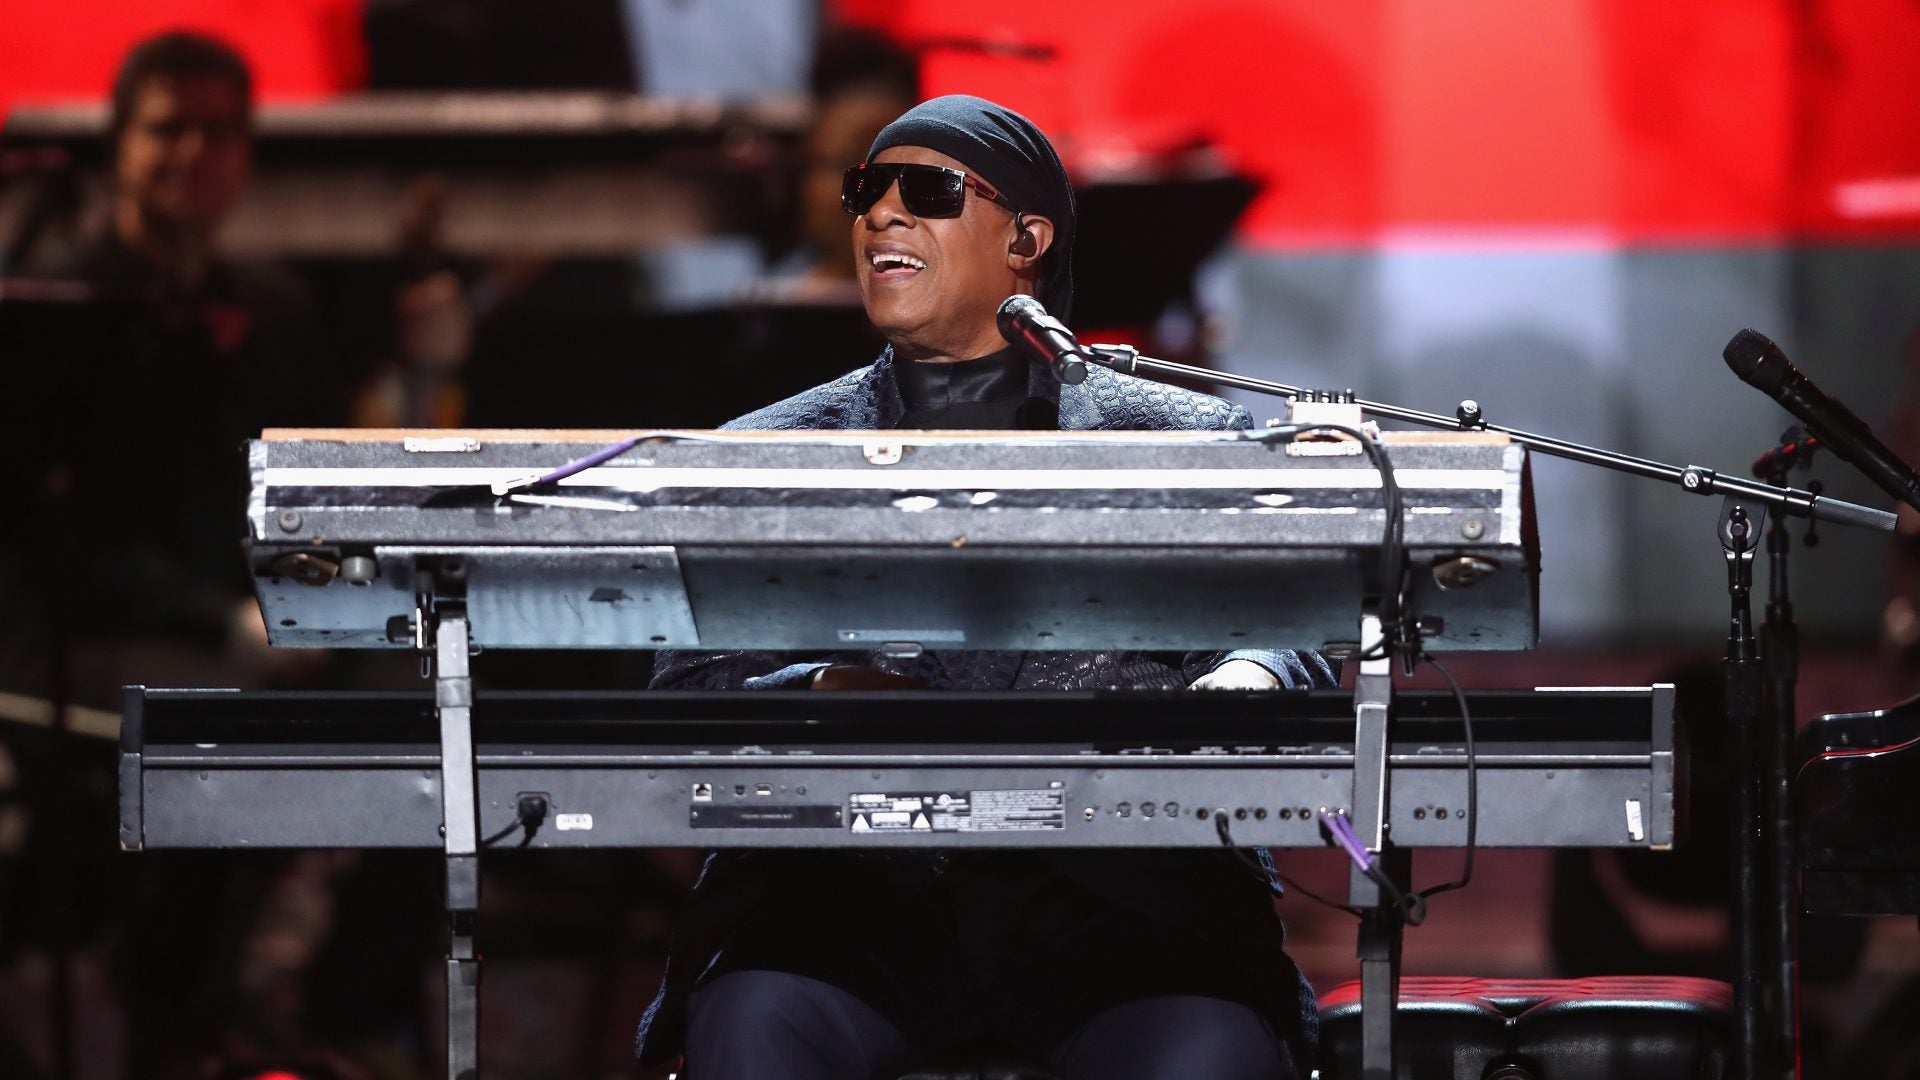 Stevie Wonder's Close Friend Reveals He Is Suffering 'Health Challenges'